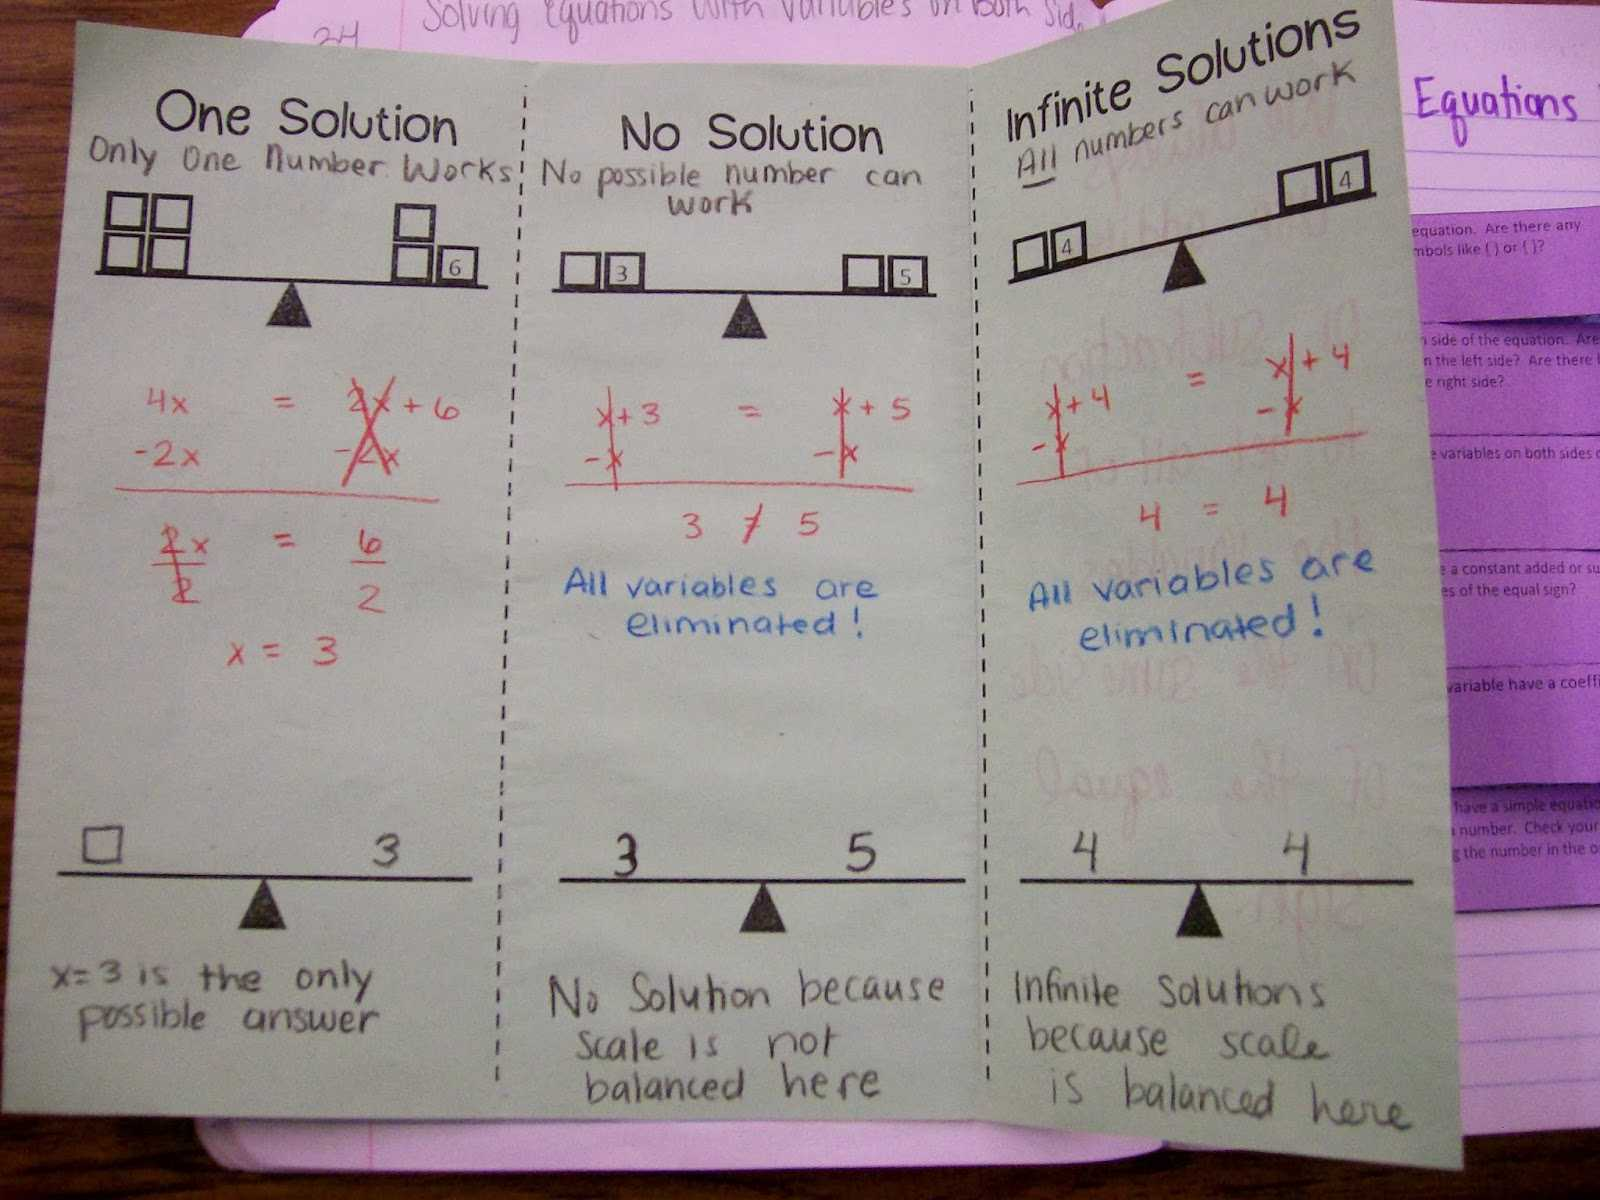 Wave Equation Worksheet Answer Key and Math Worksheets Equations with Variables Both Sides